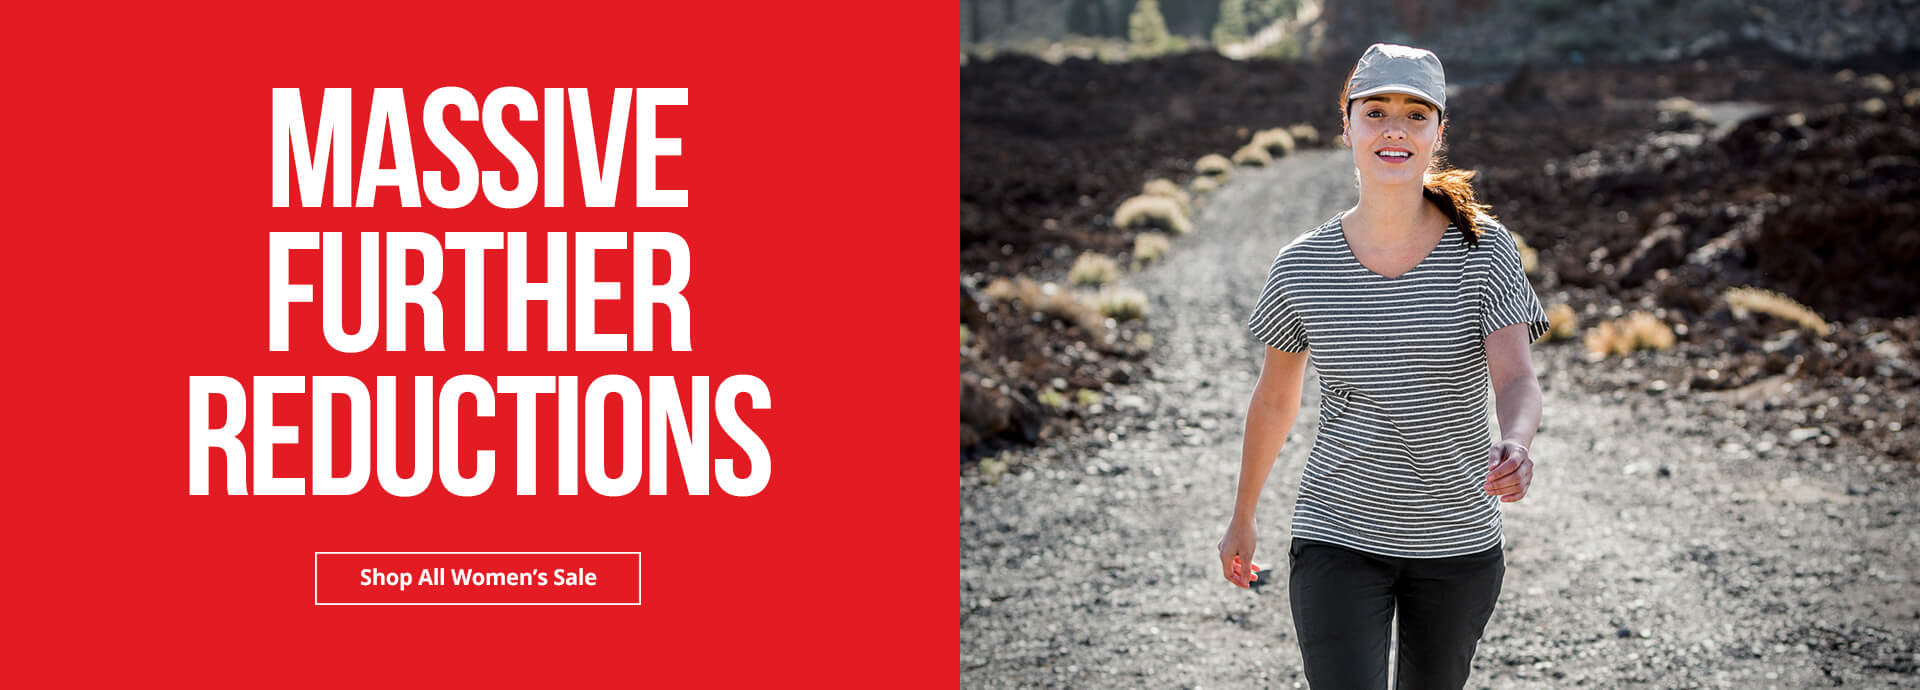 View Women's Further Reductions